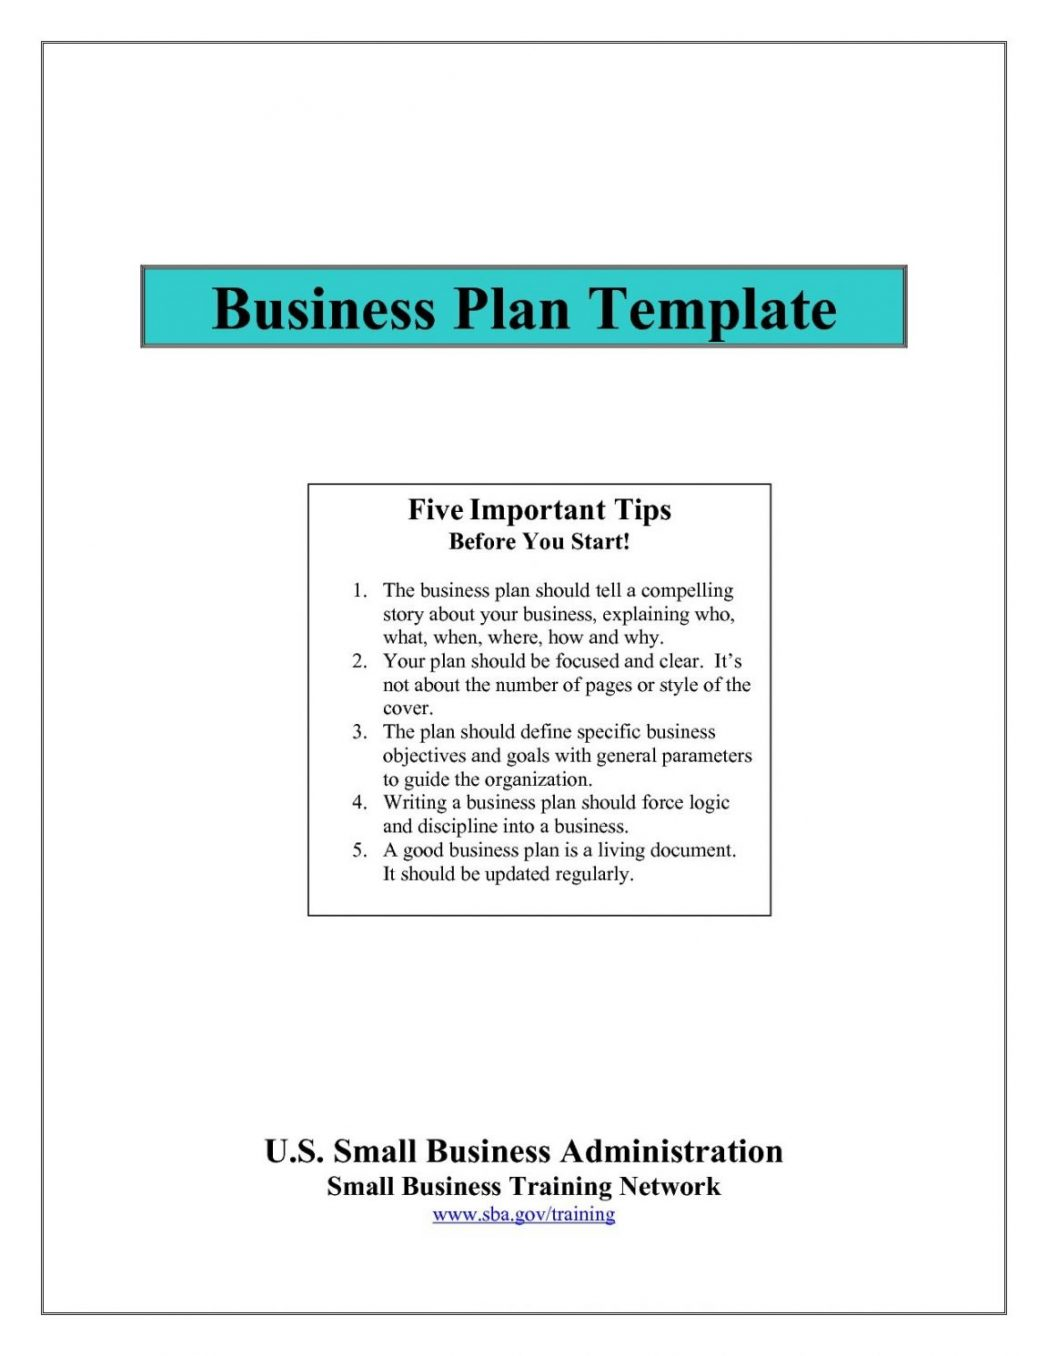 Mobile App Startup Business Plan Template For New Mac Pages Apple